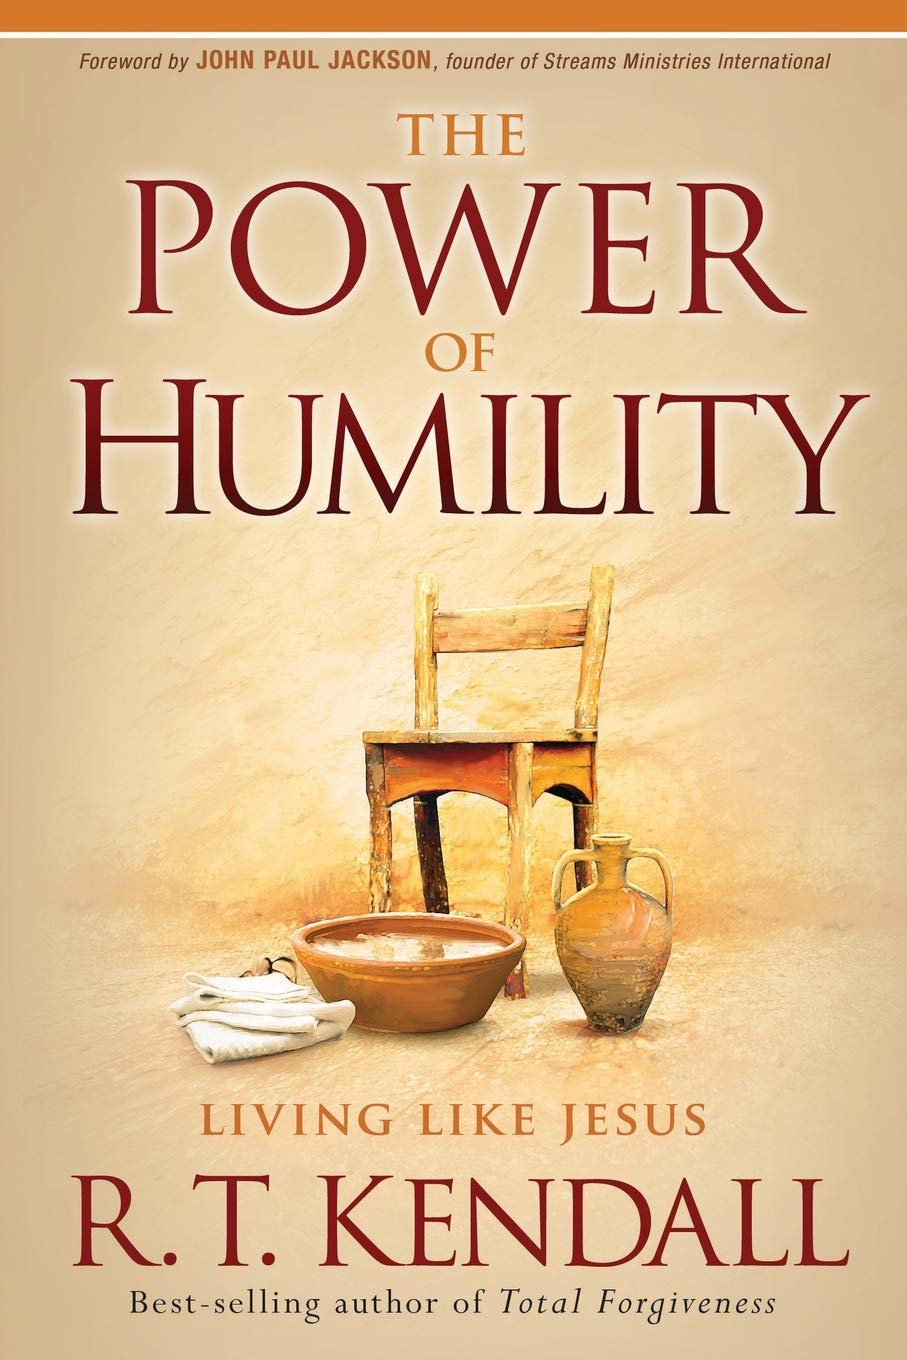 The Power Of Humility Living Like Jesus Kendall R T 9781616383480 Amazon Com Books